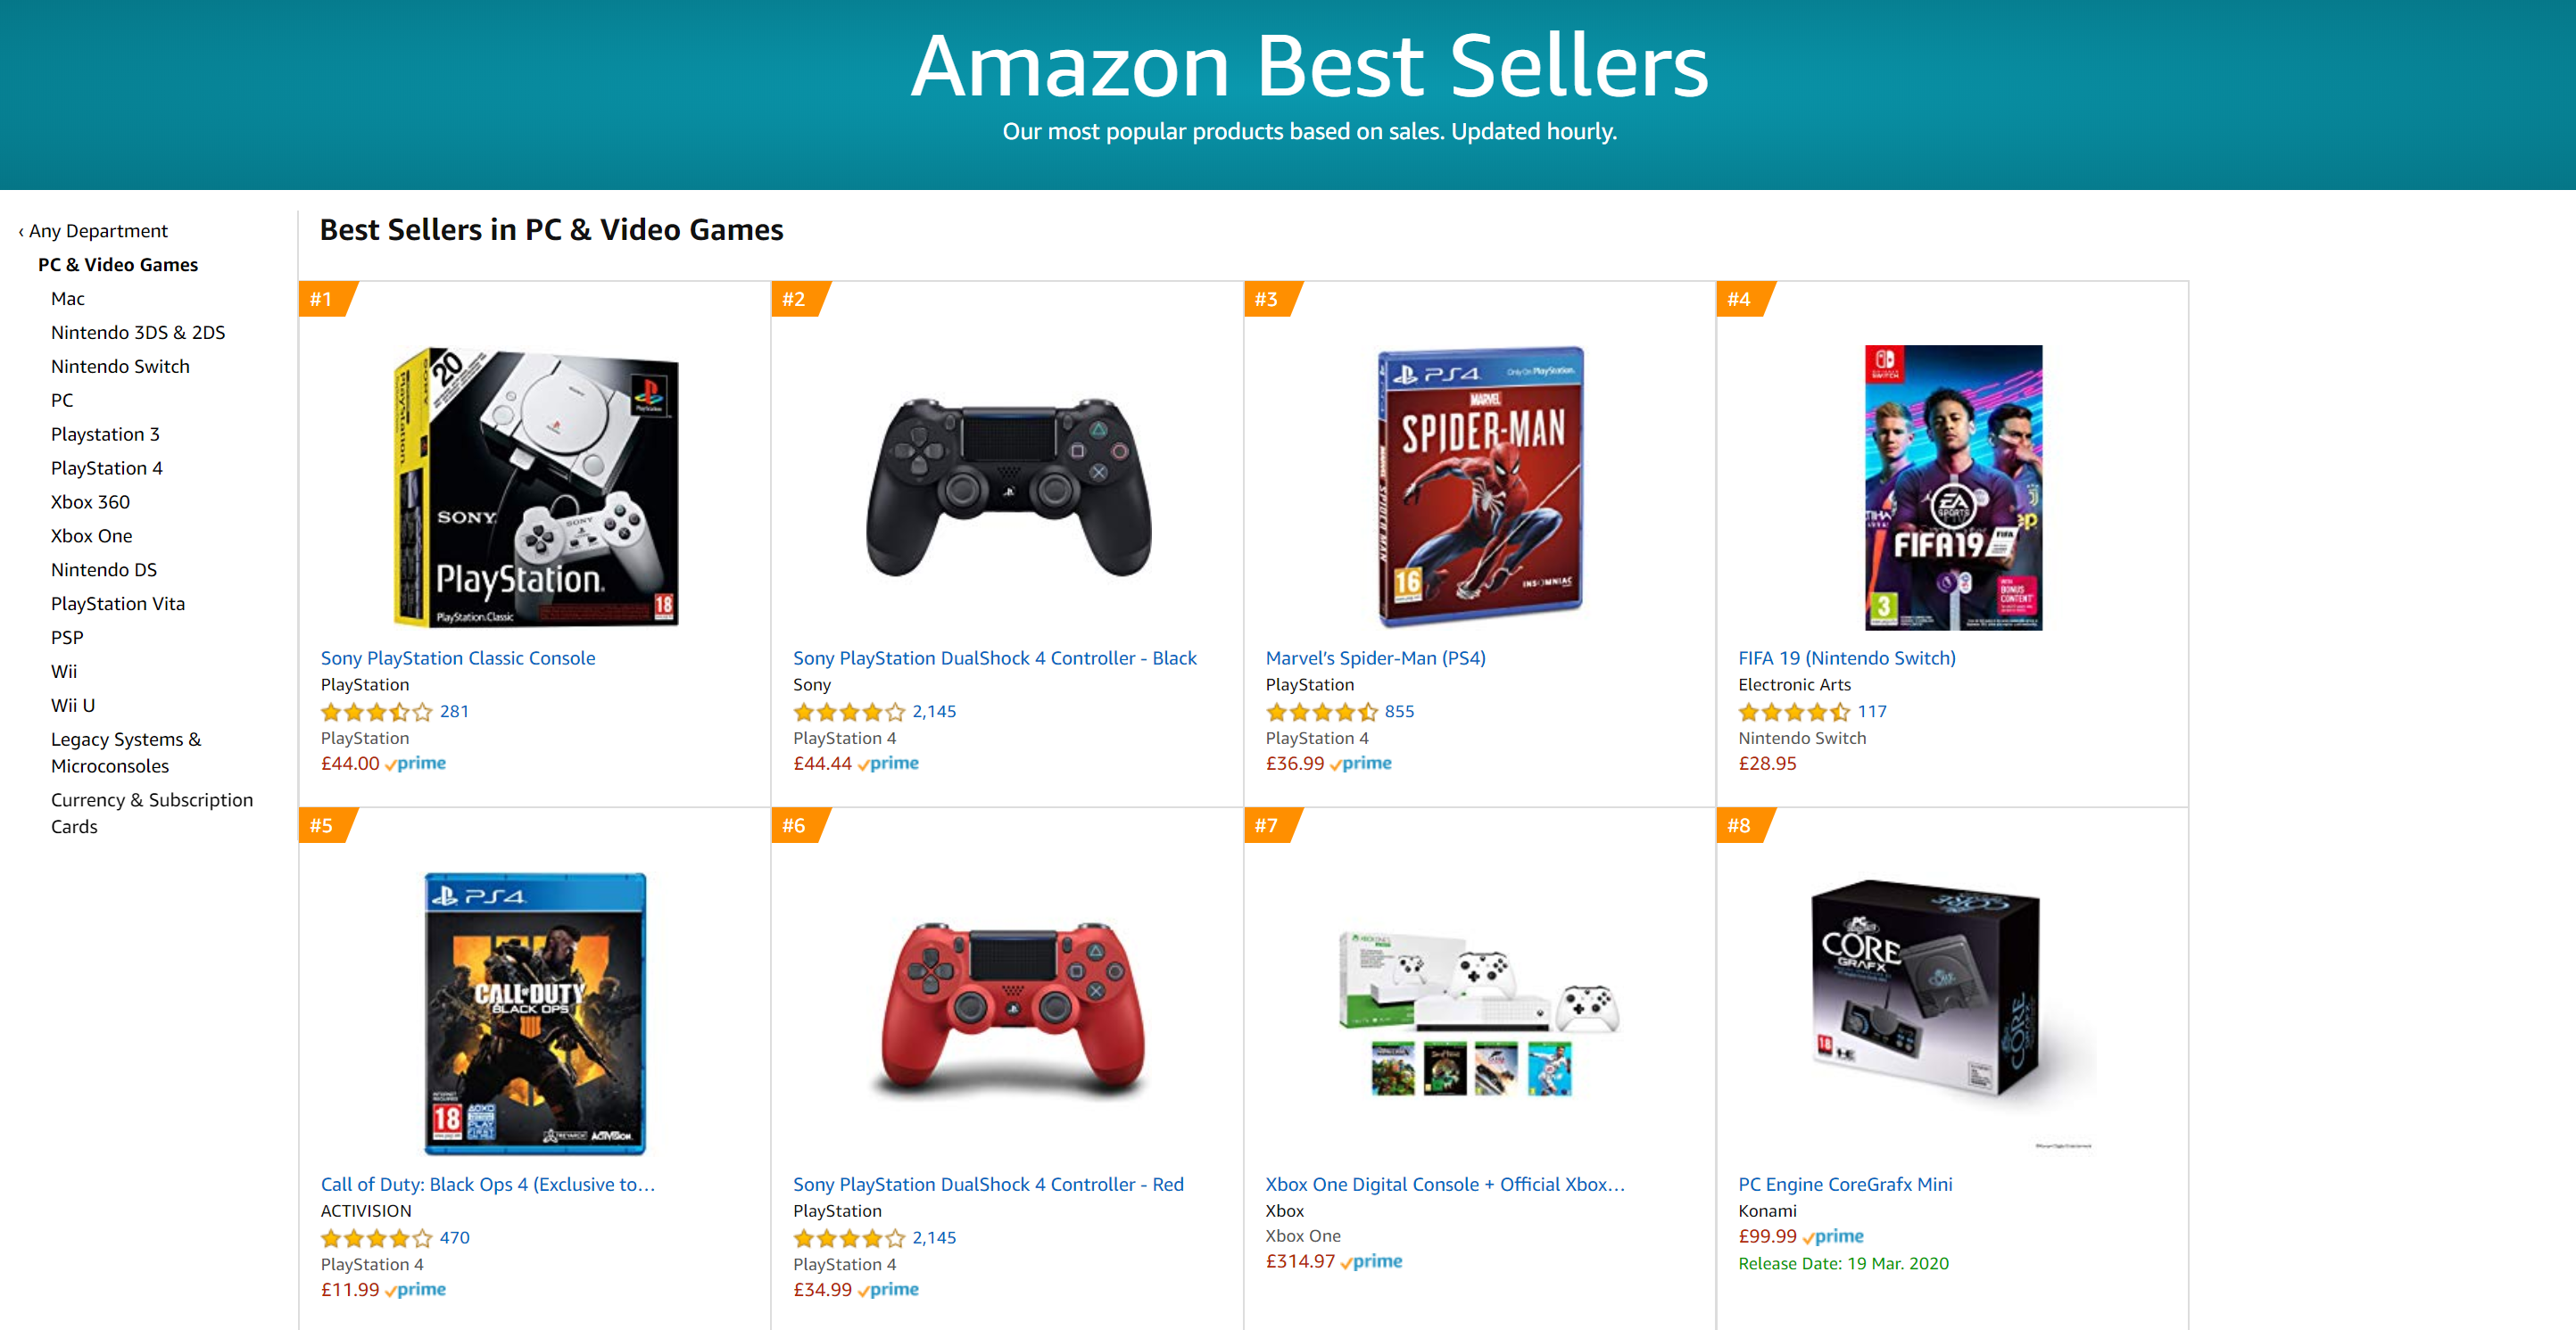 Amazon Best Selling Products